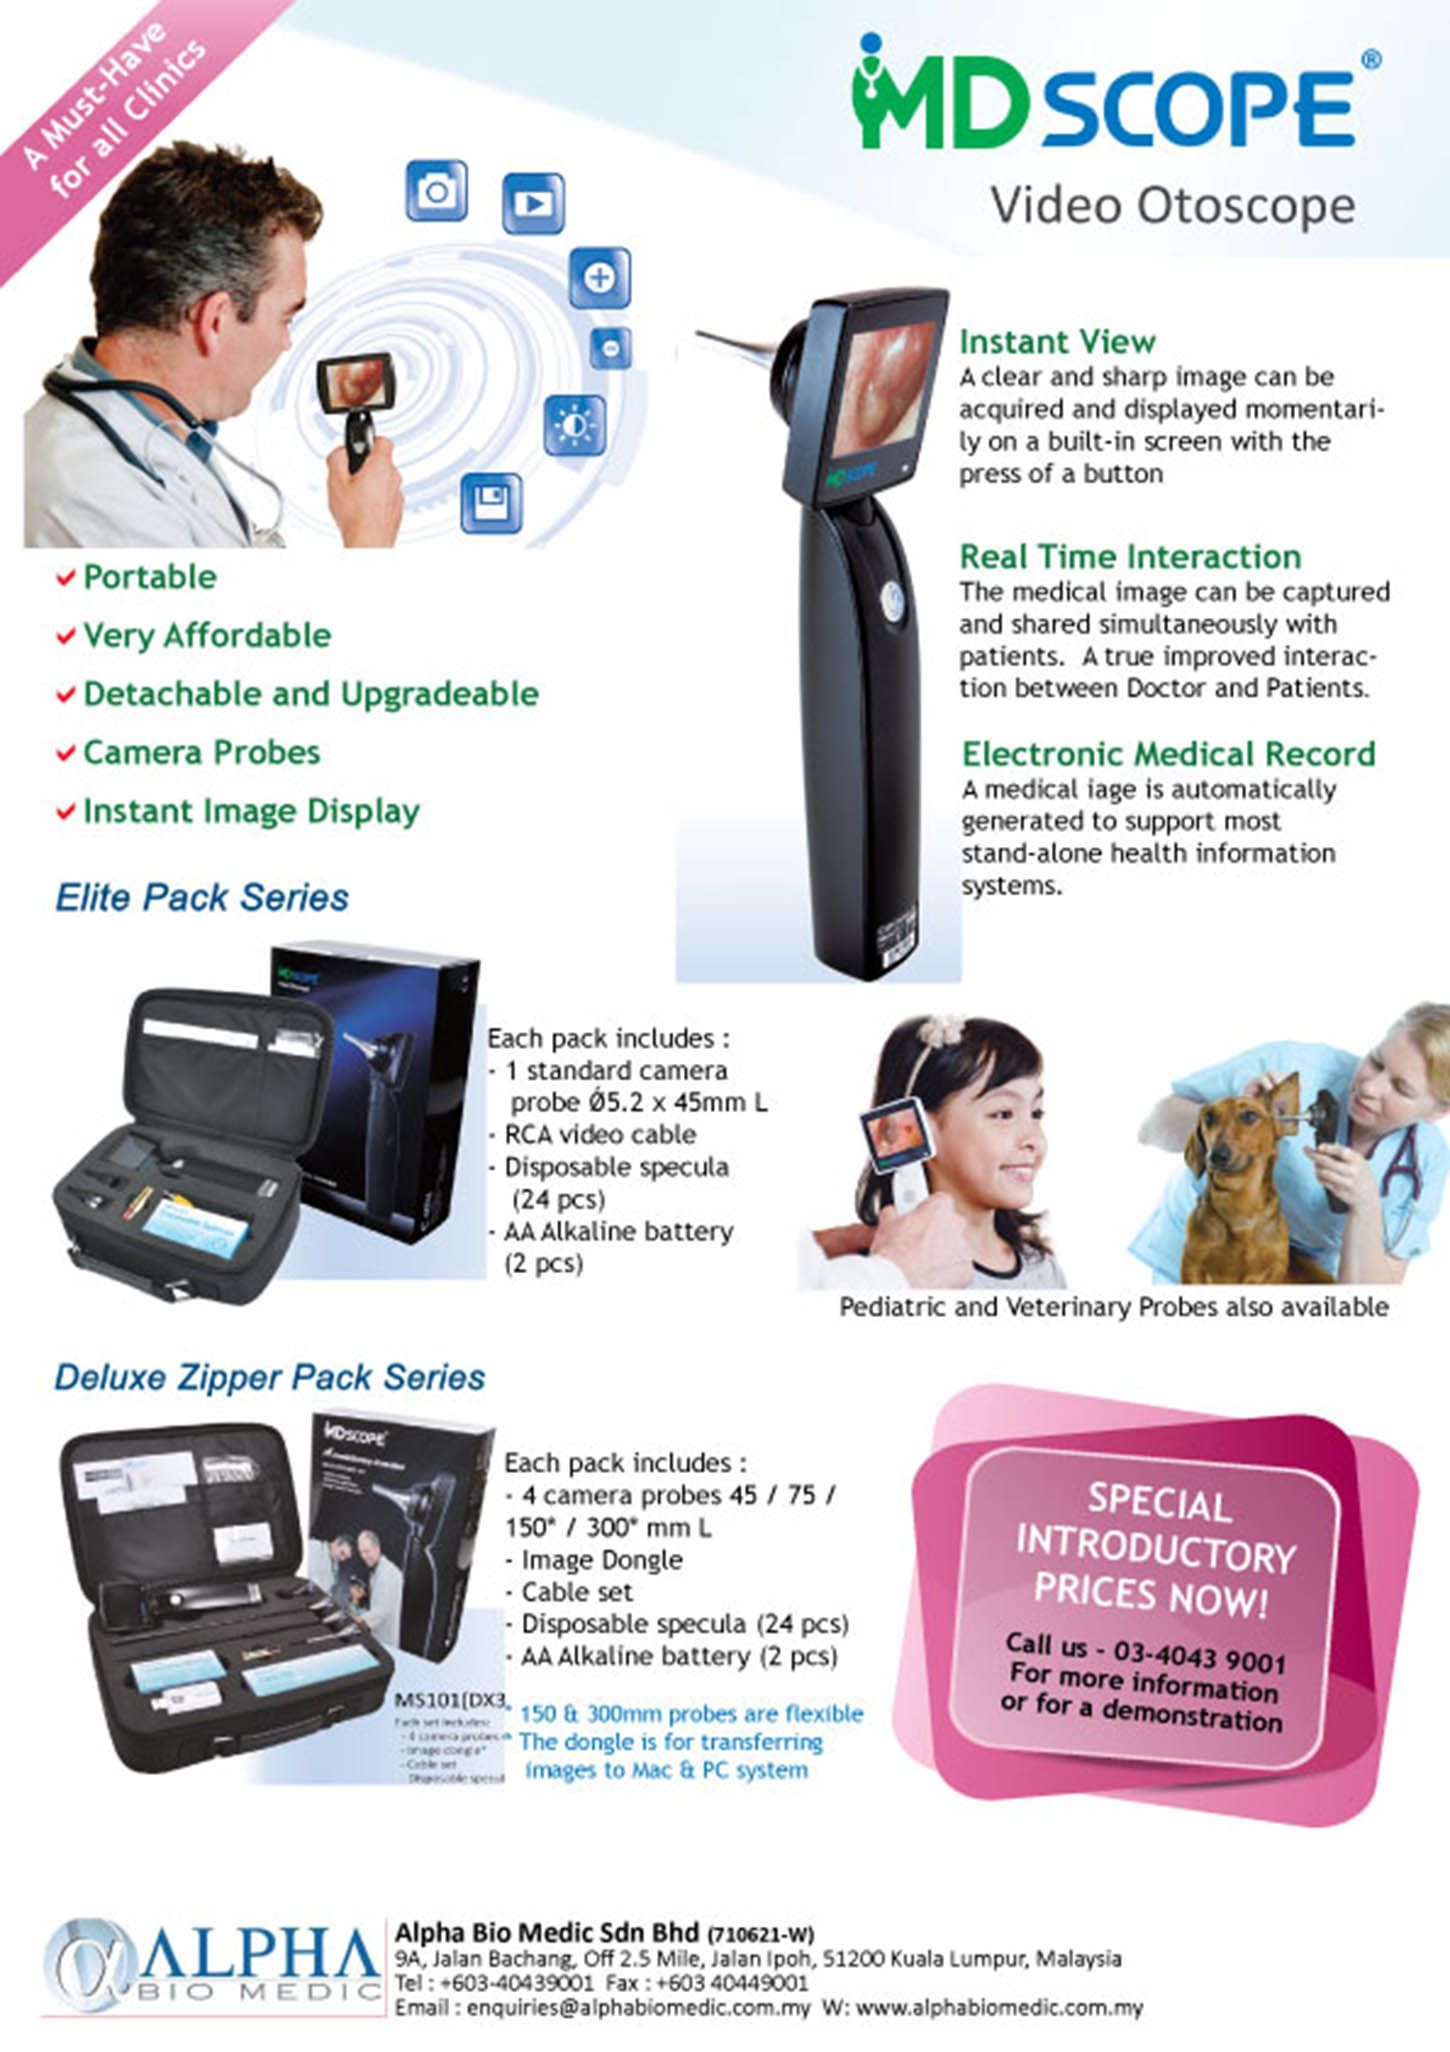 MD Scope Video Otoscope